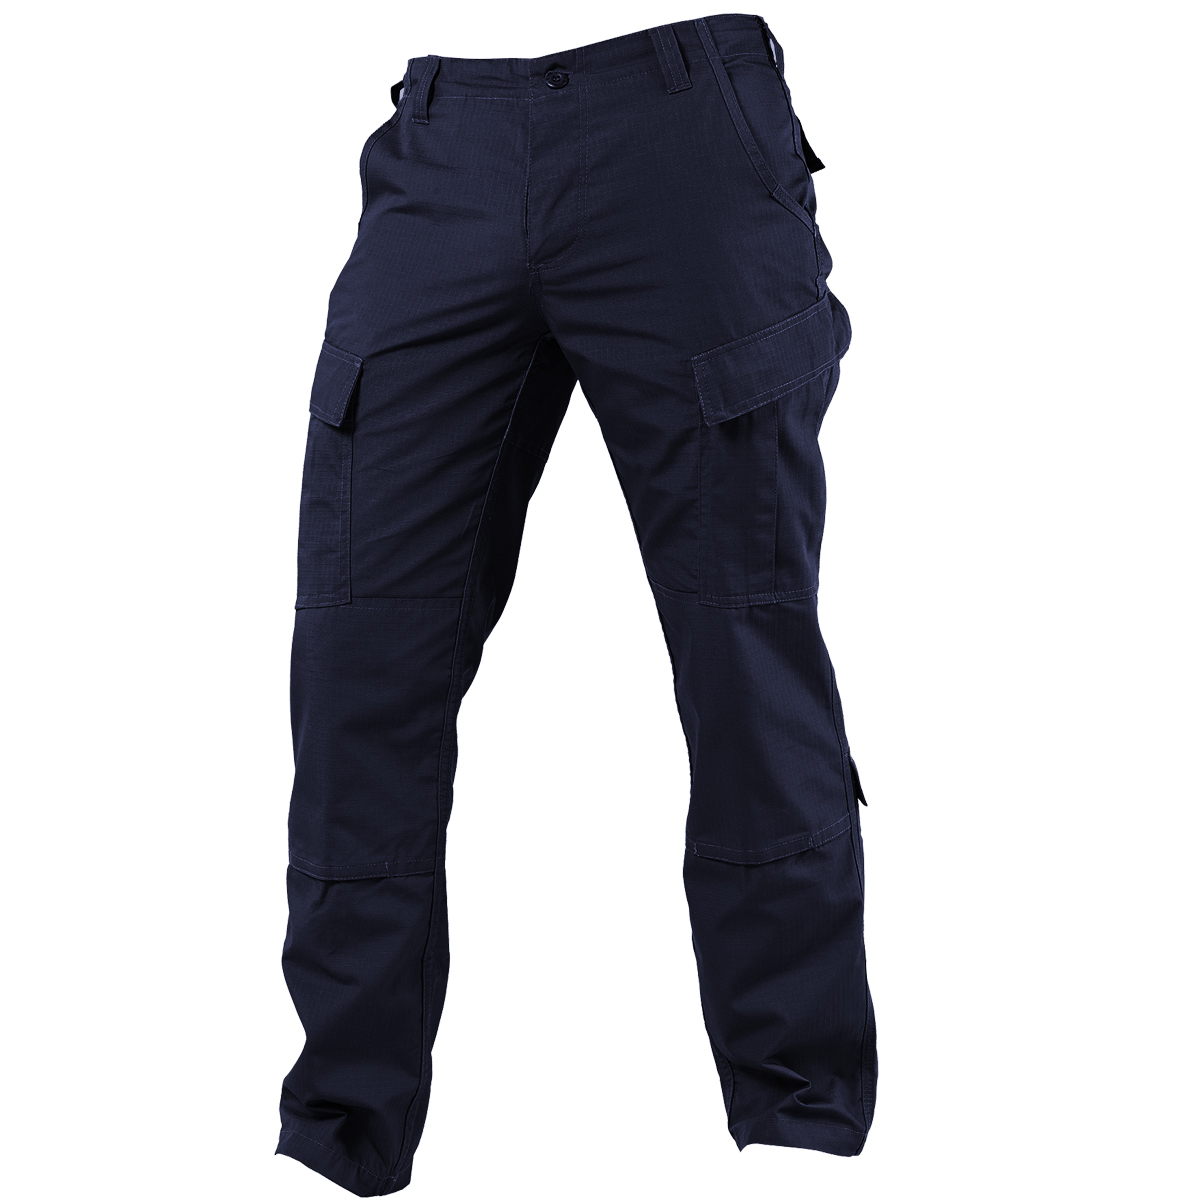 Find great deals on eBay for navy blue tactical pants. Shop with confidence.